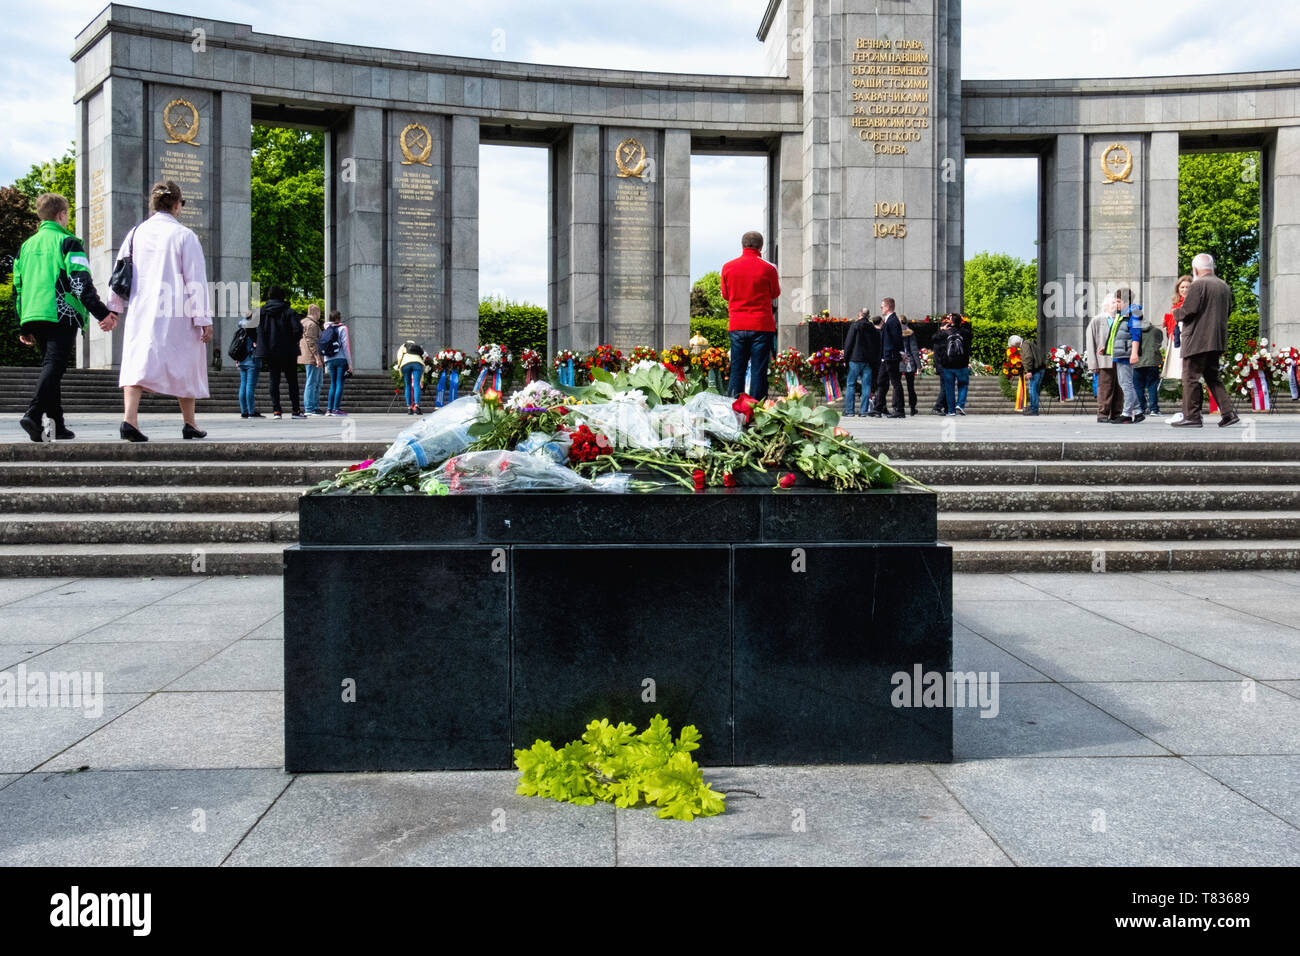 Germany, Berlin, Tiergarten, 8th May 2019, Soviet soldiers are remembered in a wreath-laying ceremony on the anniversary of VE Day on the 8 May. Official bodies lay floral wreaths and people deposit floral tributes and candles around the monument. The Soviet Memorial in Tiergarten commemorates the 80,000 Soviet soldiers who fell during the Battle of Berlin in the last weeks of the Second World War in Germany. The war memorial on Straße des 17. Juni was designed by architect Mikhail Gorvits with the sculpture of the Soviet soldier by sculptors Vladimir Tsigal and Lev Kerbel. Stock Photo